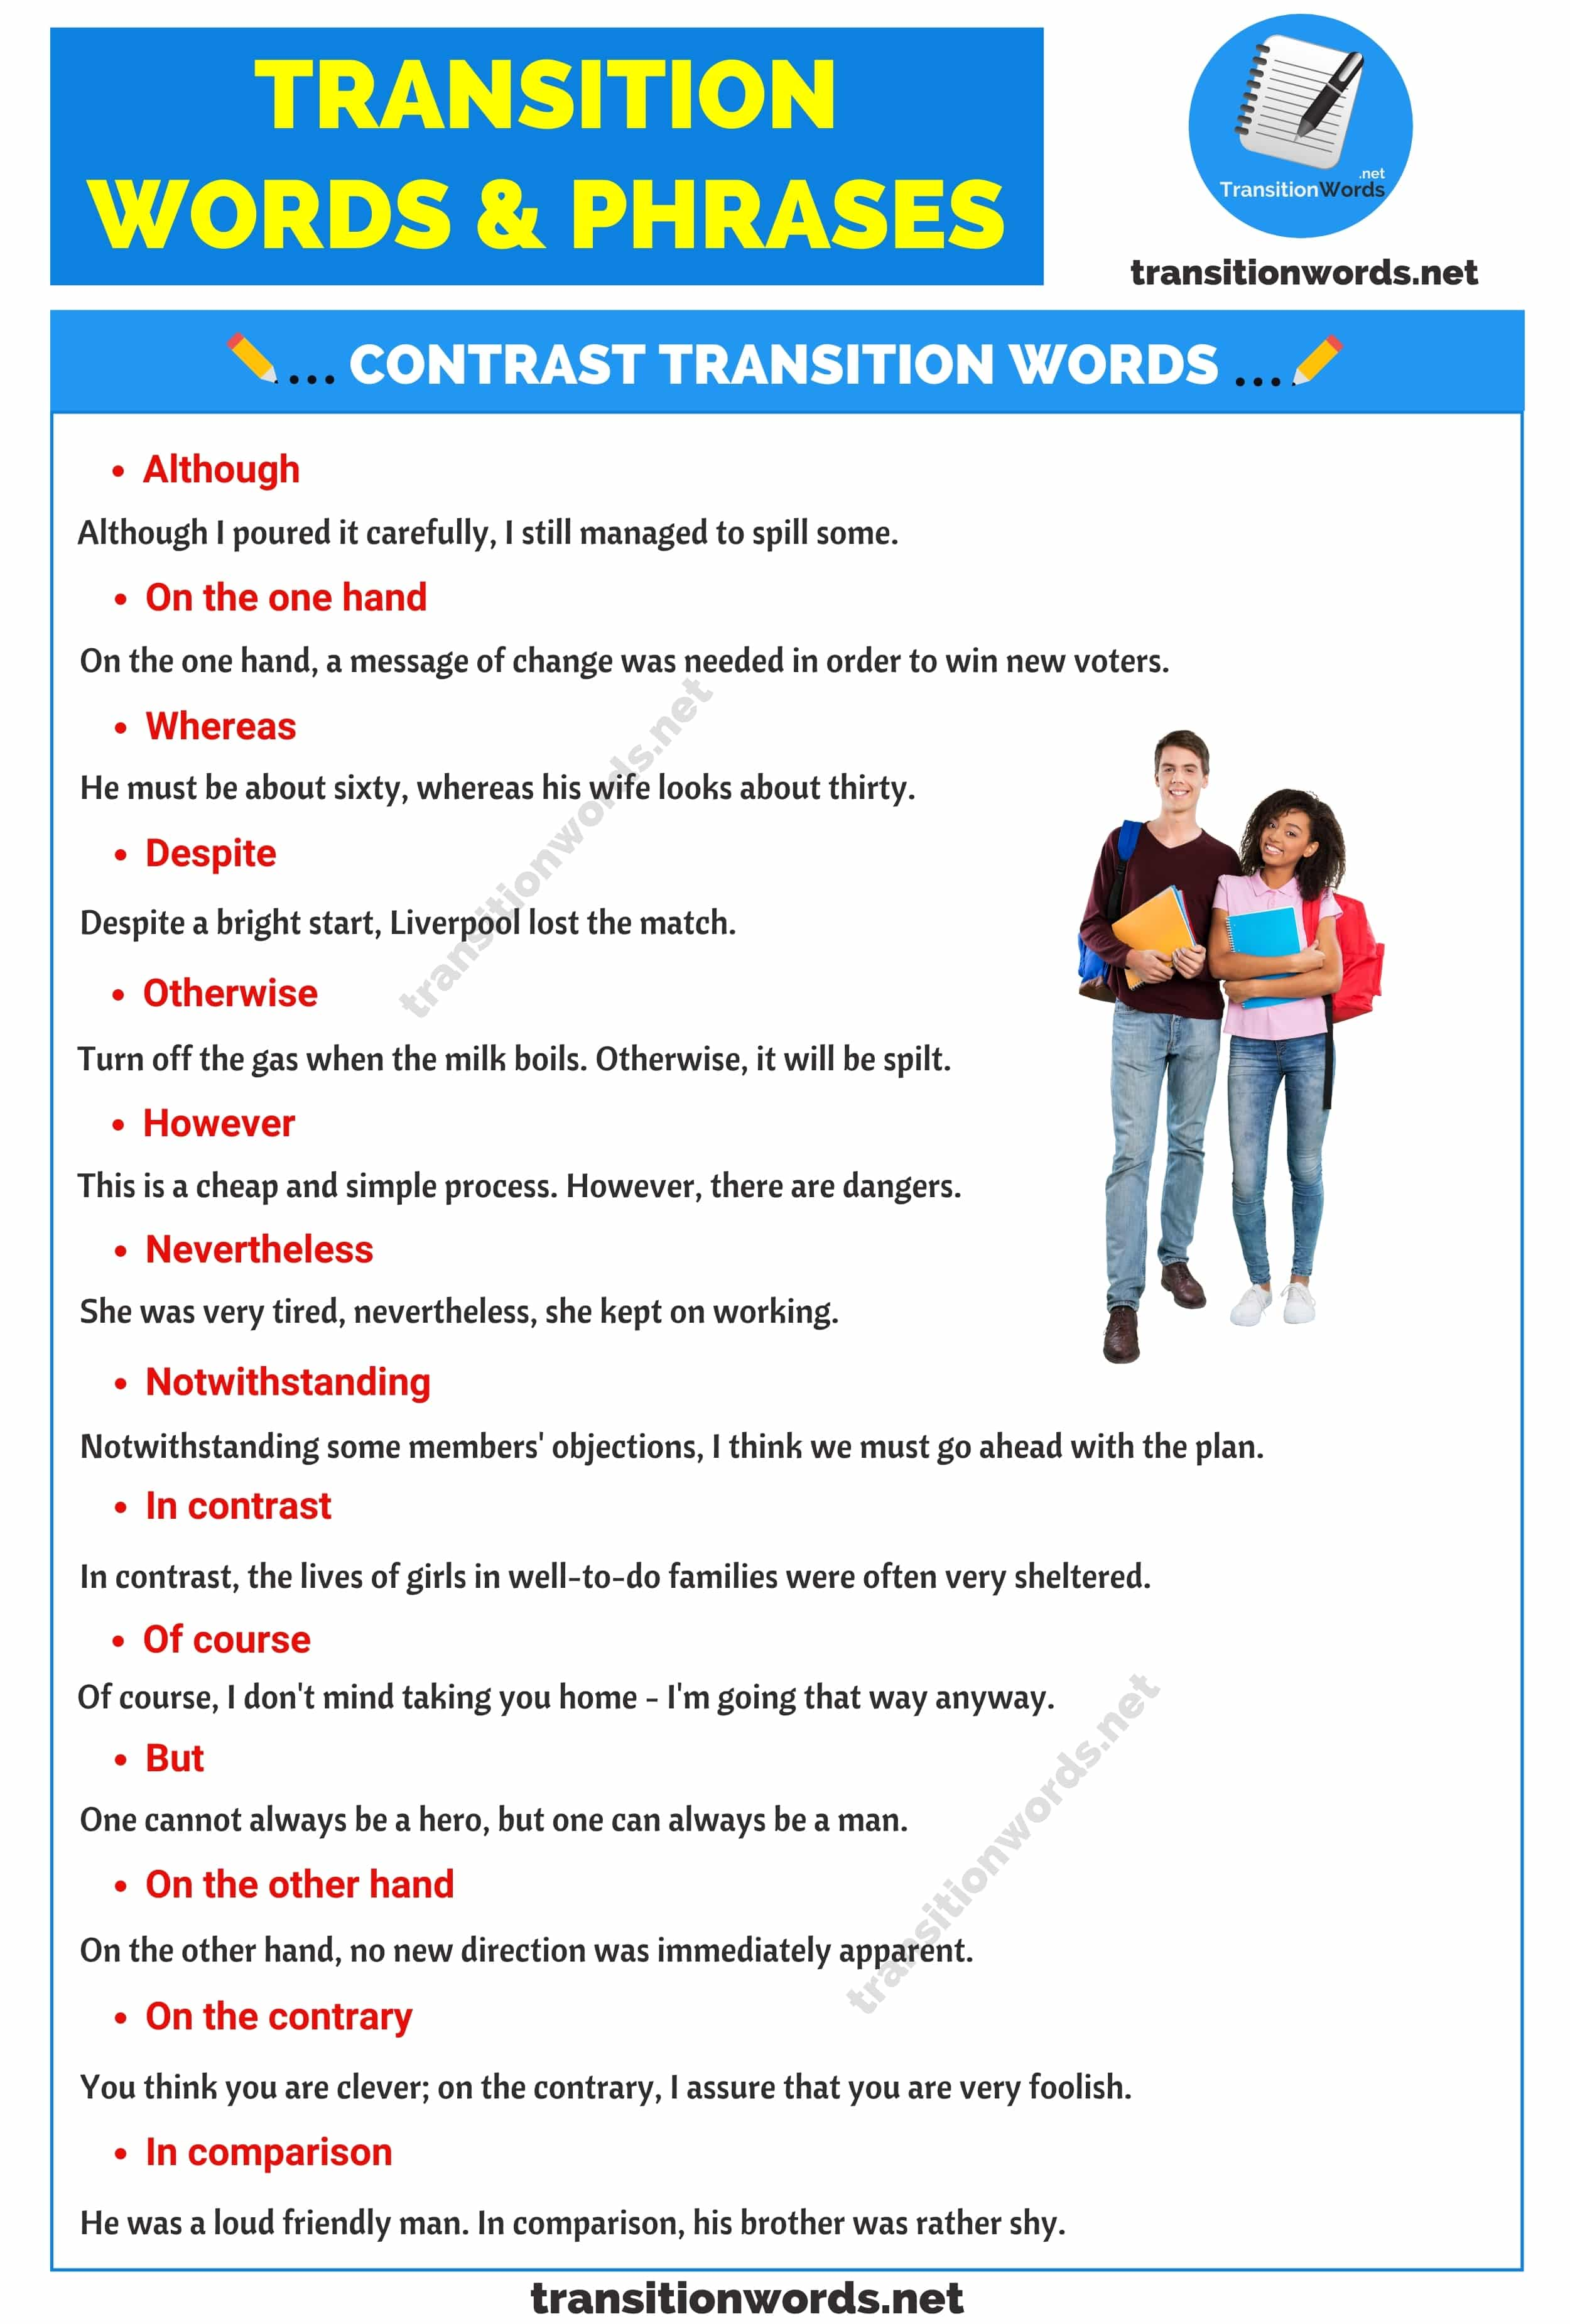 Transition Words & Phrases in English: Different Types, Useful Lists with Example Sentences